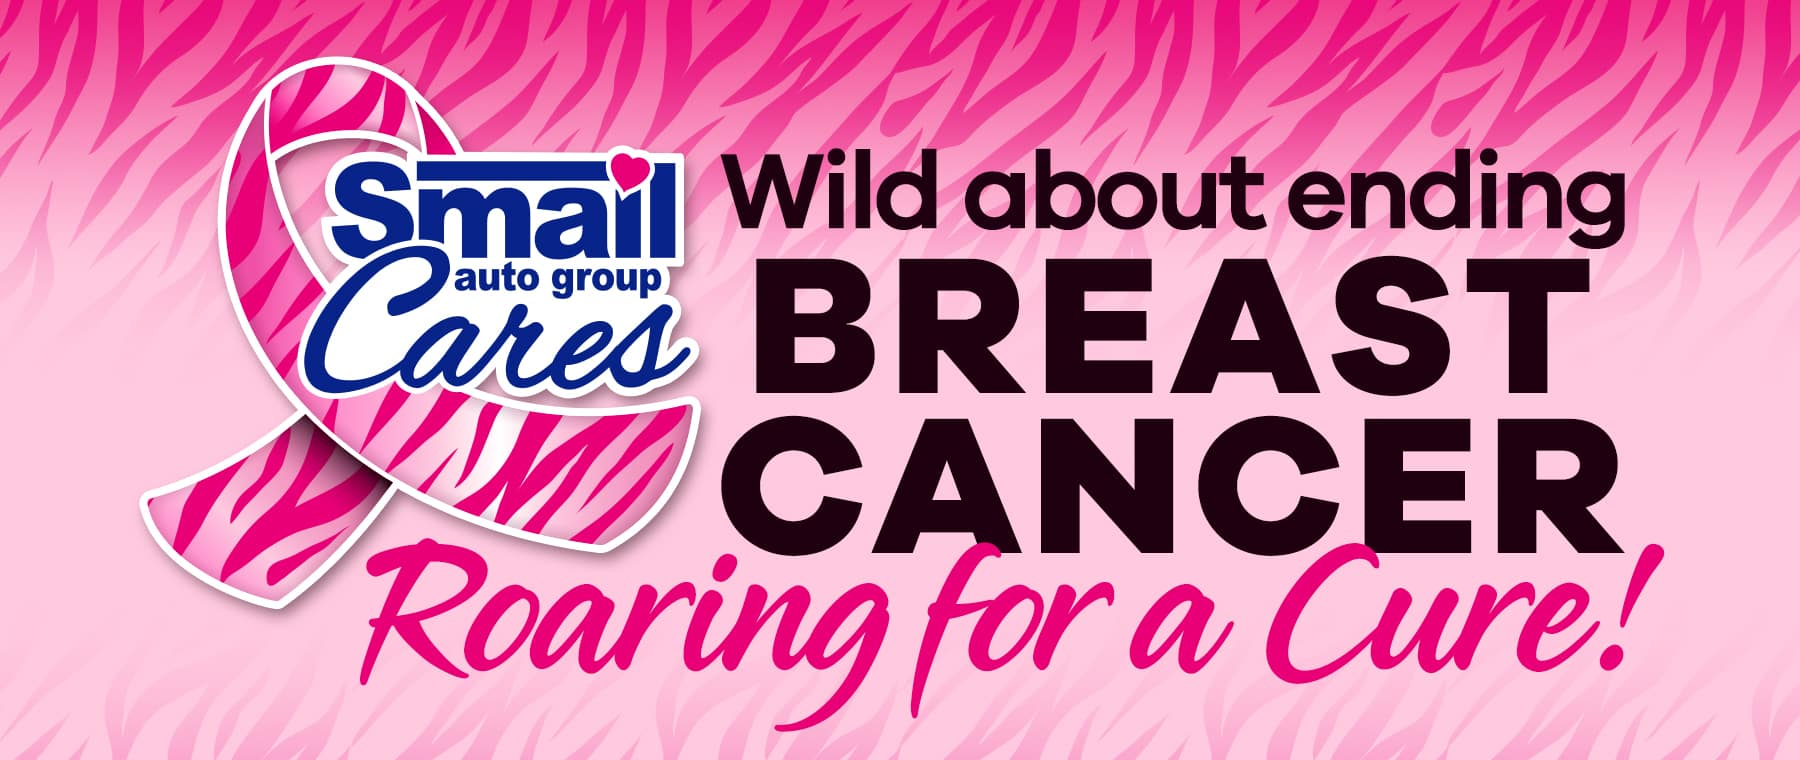 Smail Auto Group Breast Cancer Awareness Month!